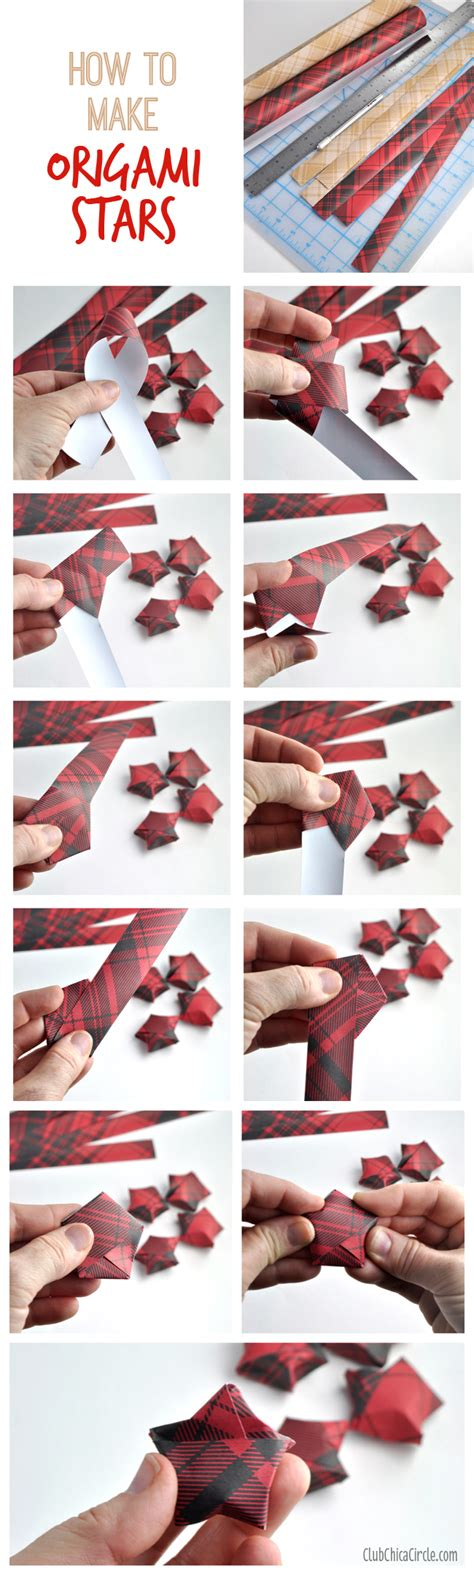 Wrapping Paper Folding Techniques - origami garland diy club chica circle